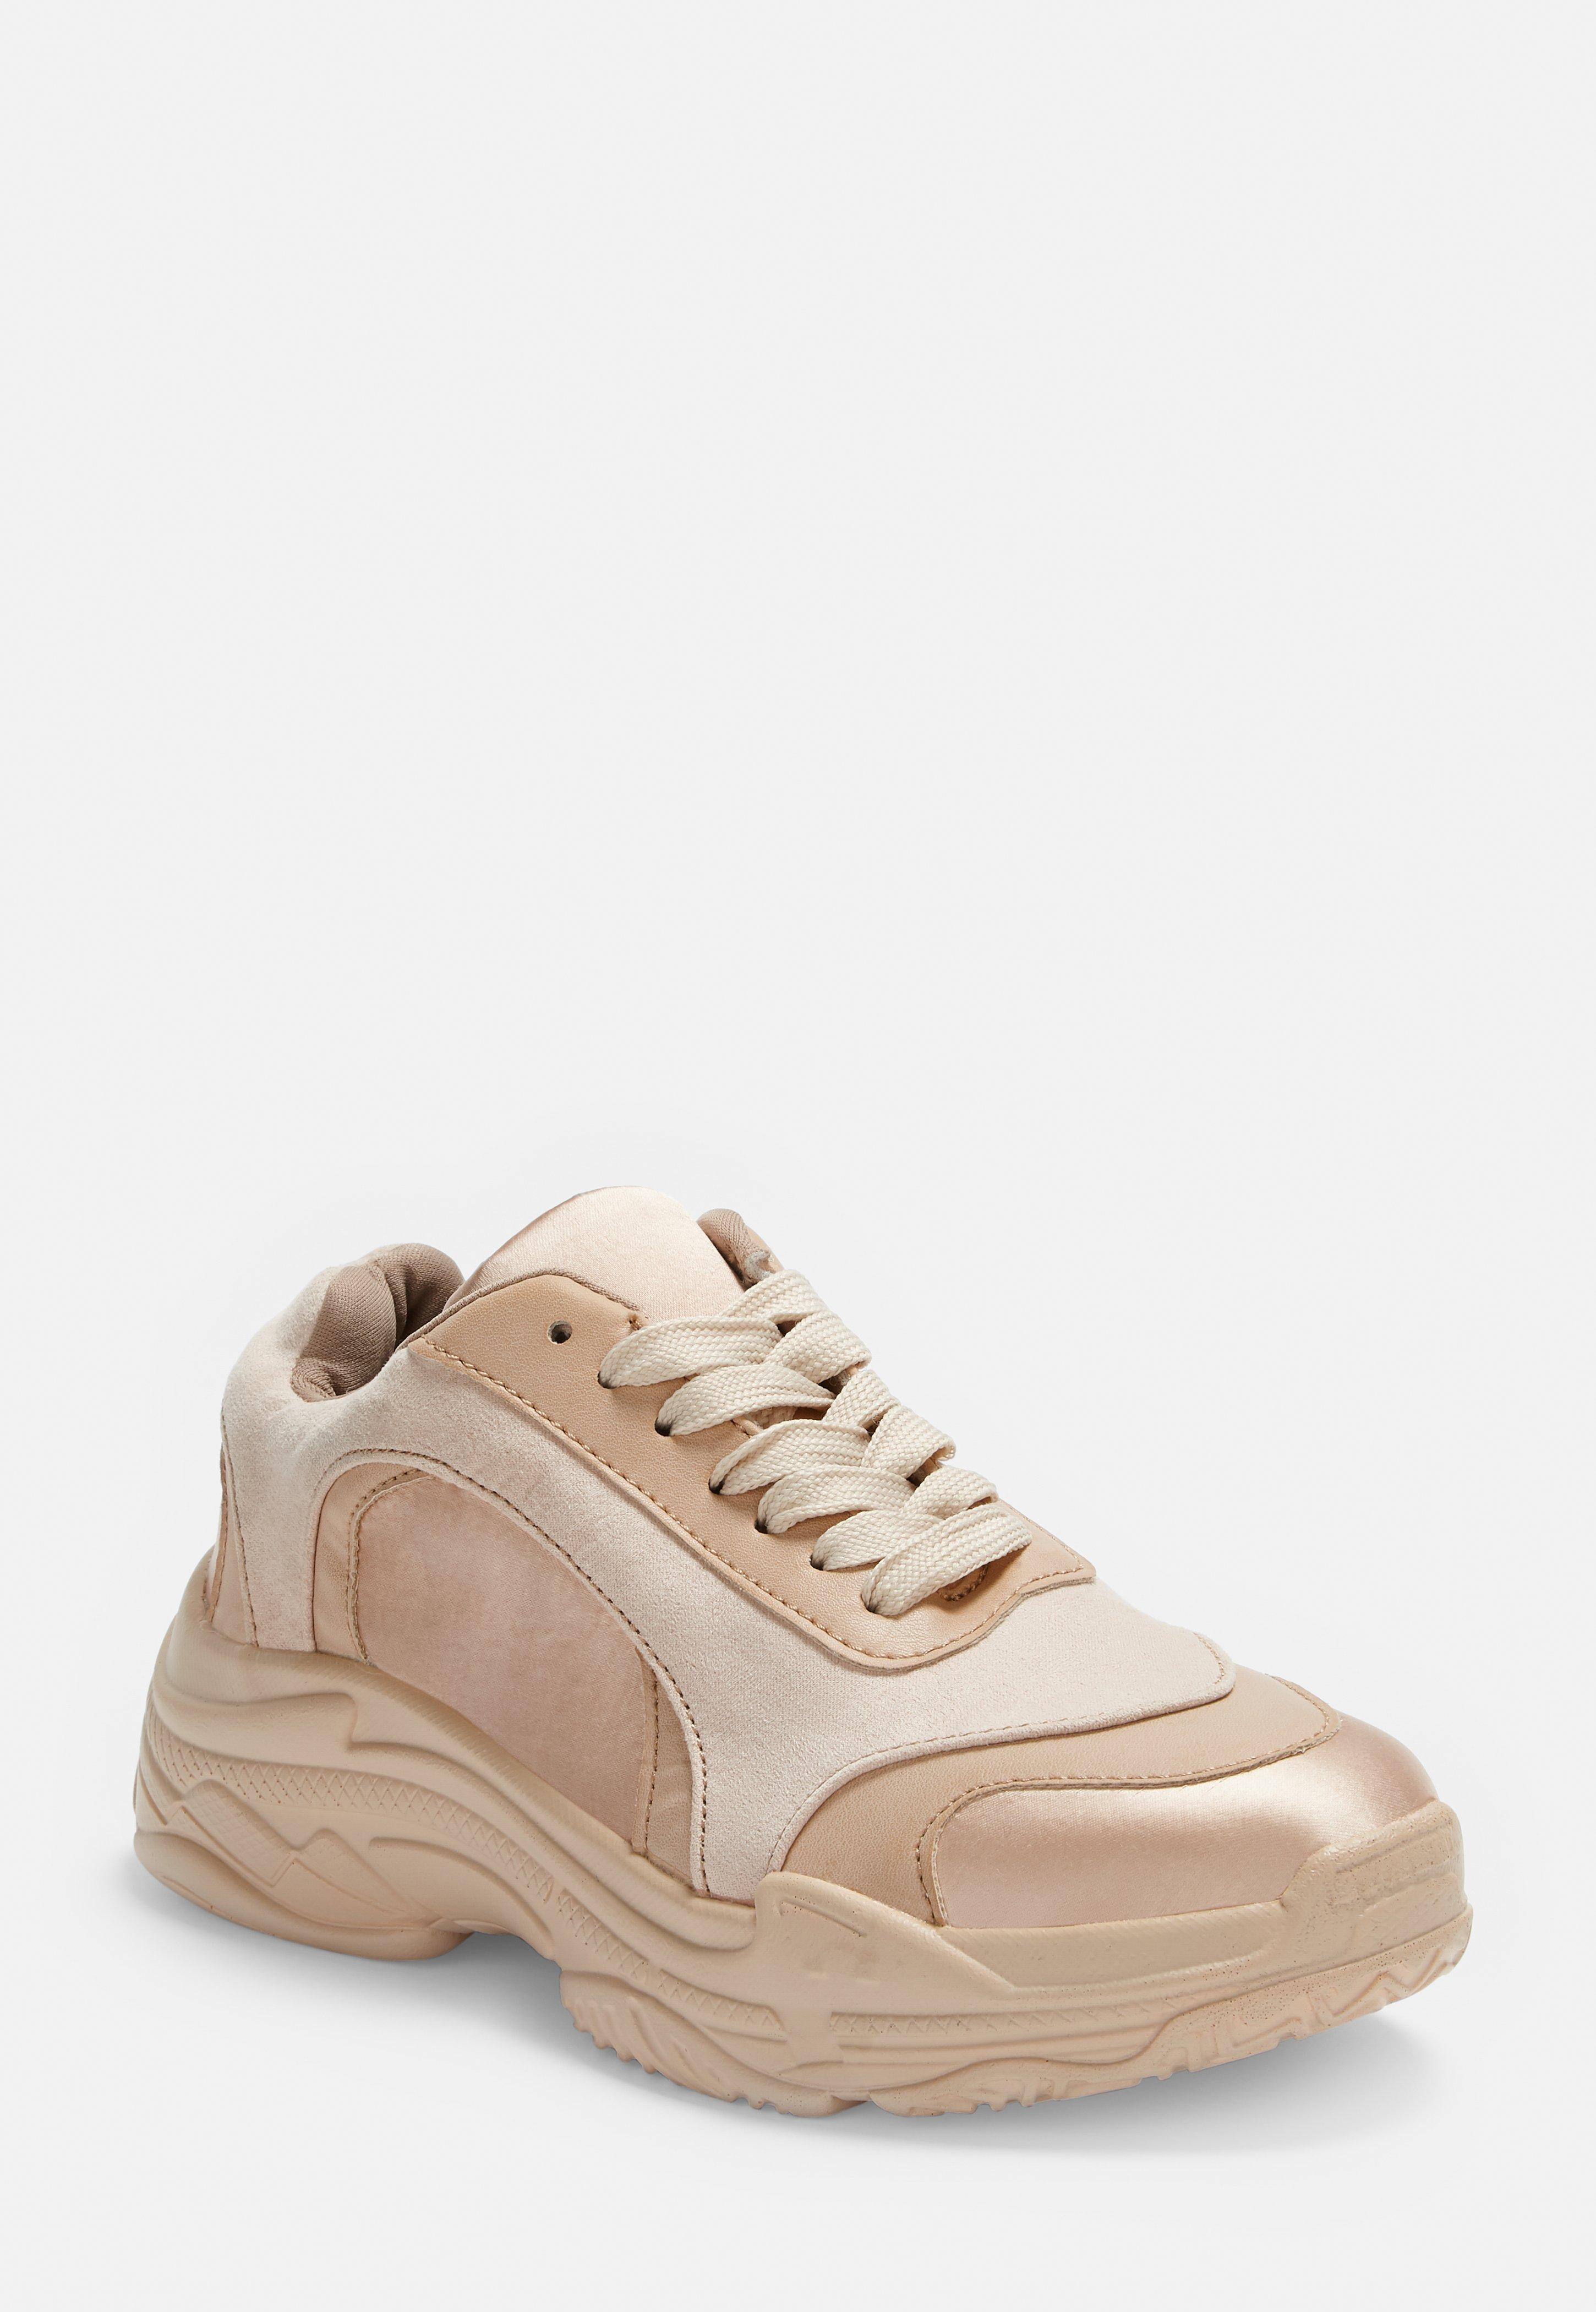 10af15aa8653 Flat Shoes - Shop Women's Flat Shoes Online - Missguided